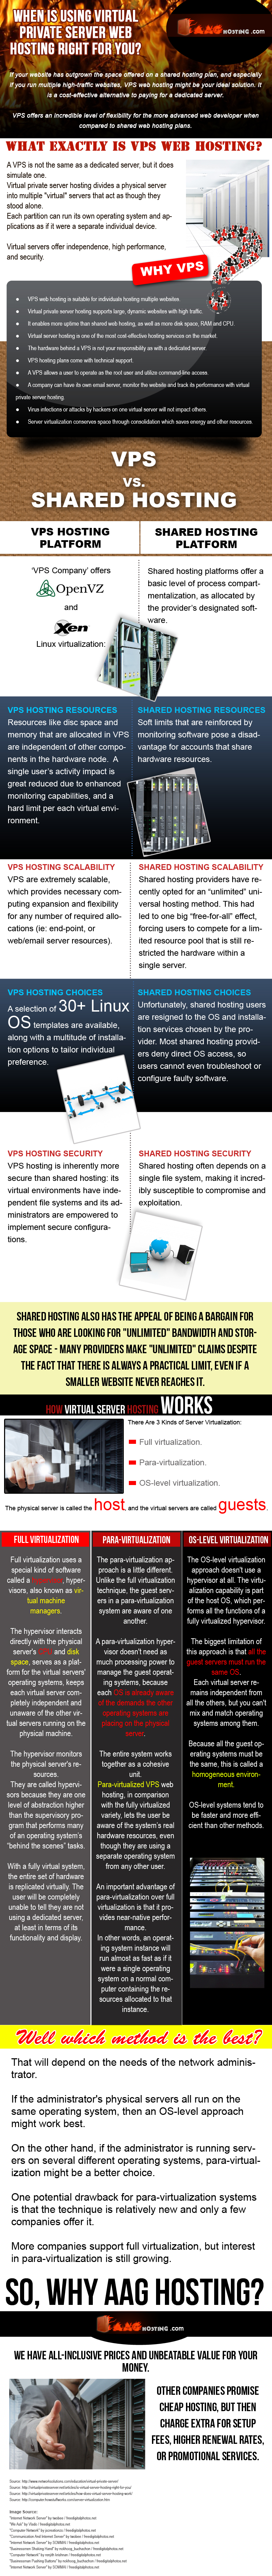 VPS Hosting vs. the Alternative